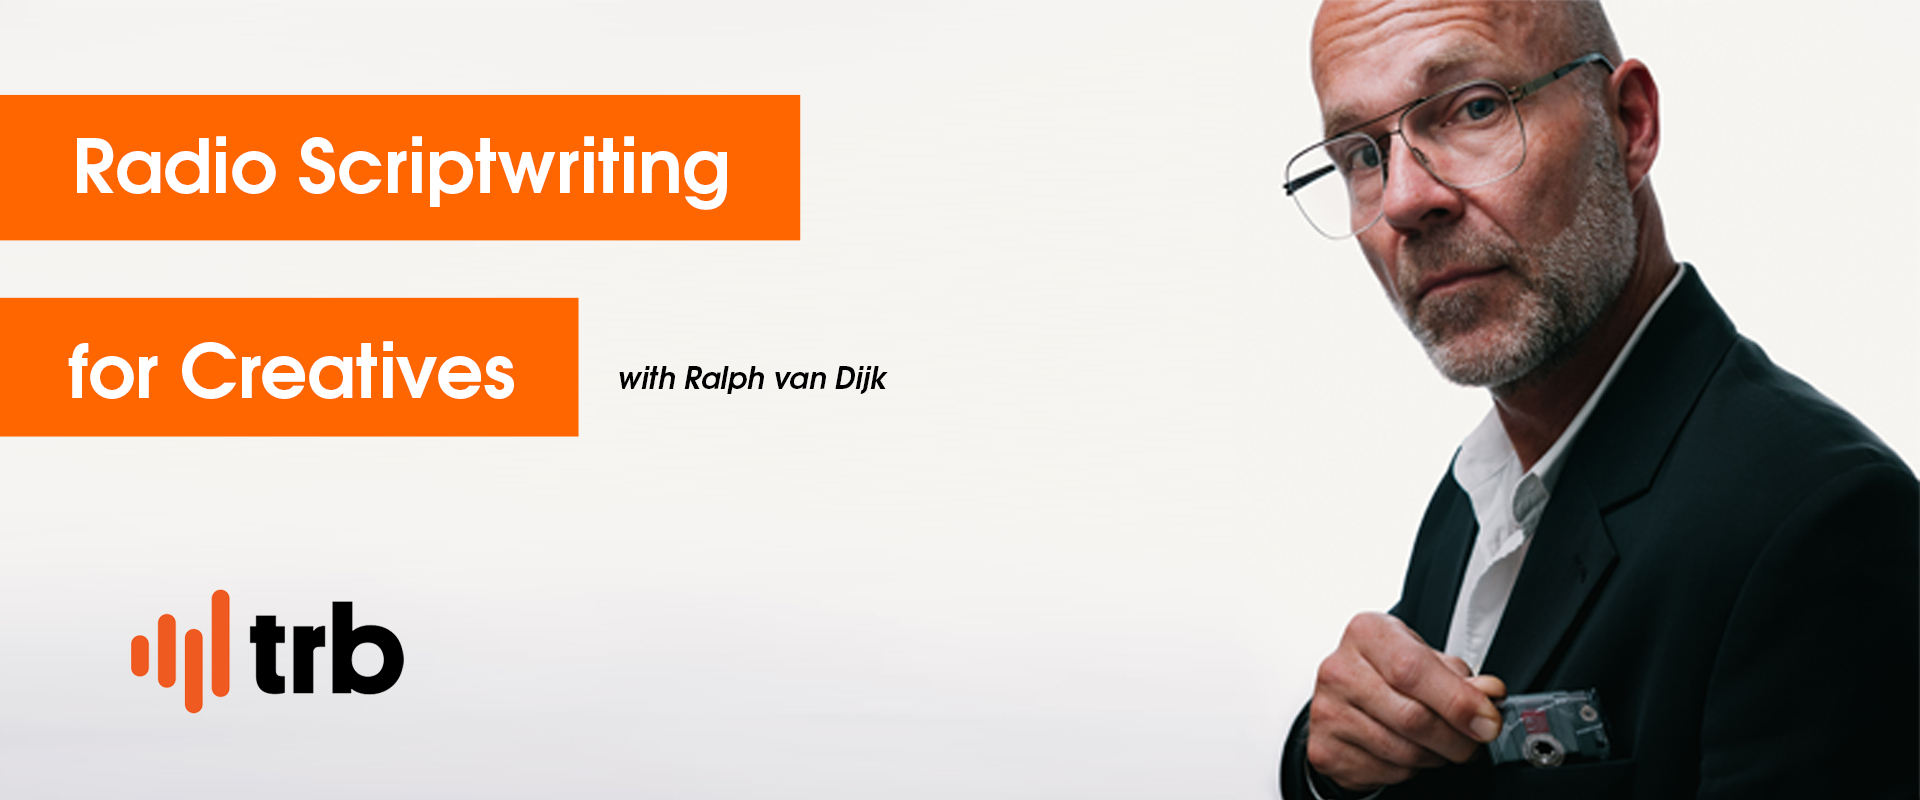 Radio Scriptwriting for Creatives with Ralph van Dijk - Auckland